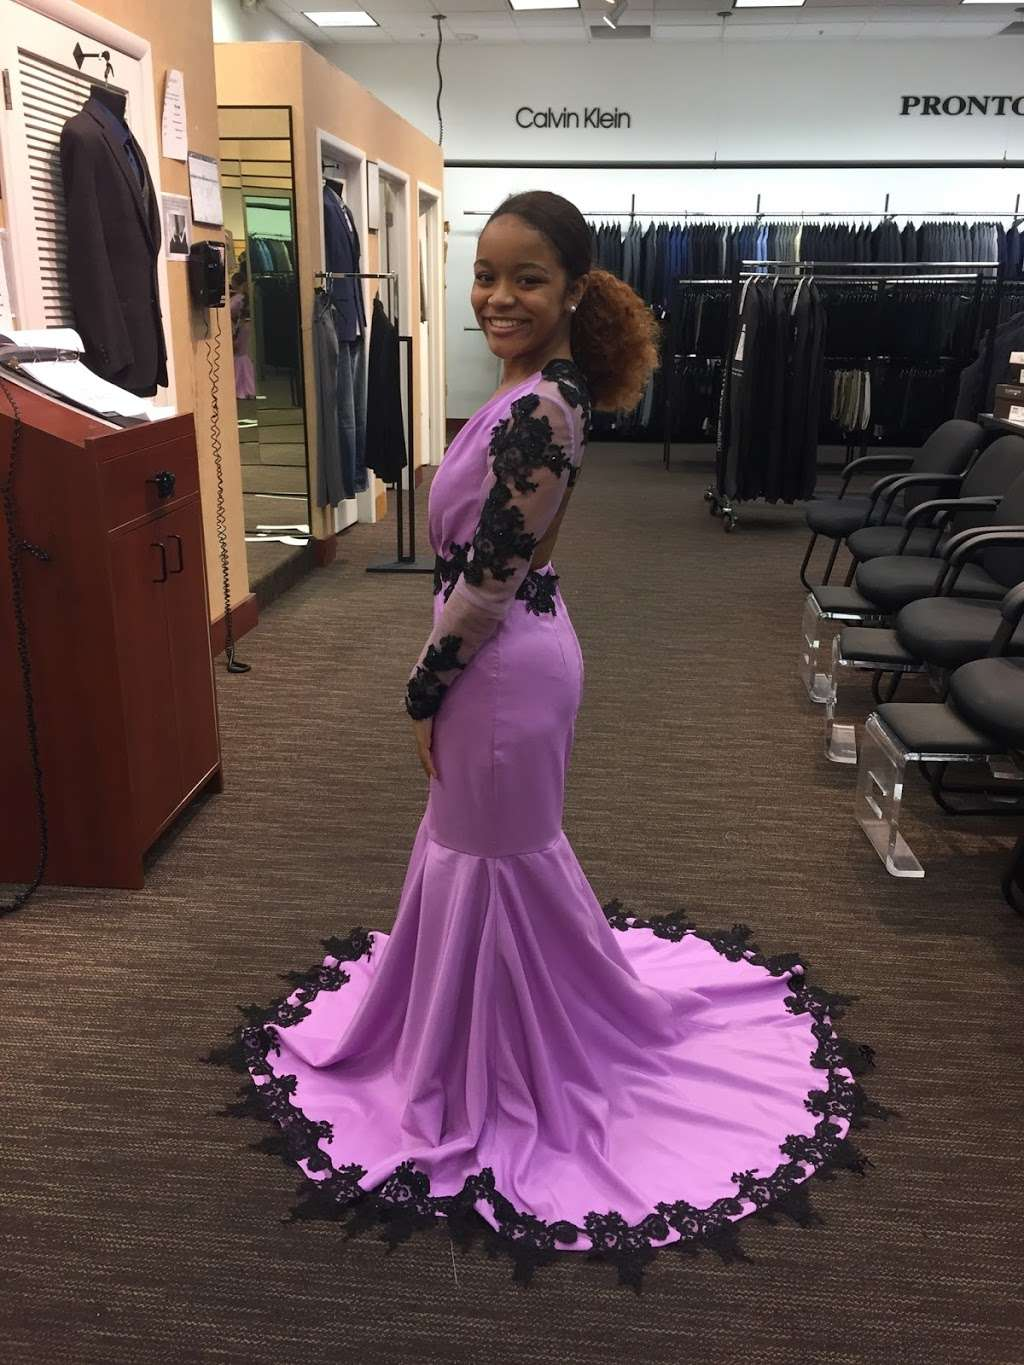 Carmens Sewing & Alterations - store  | Photo 7 of 10 | Address: 411 Bayview Dr, Edgewater, MD 21037, USA | Phone: (908) 577-6173